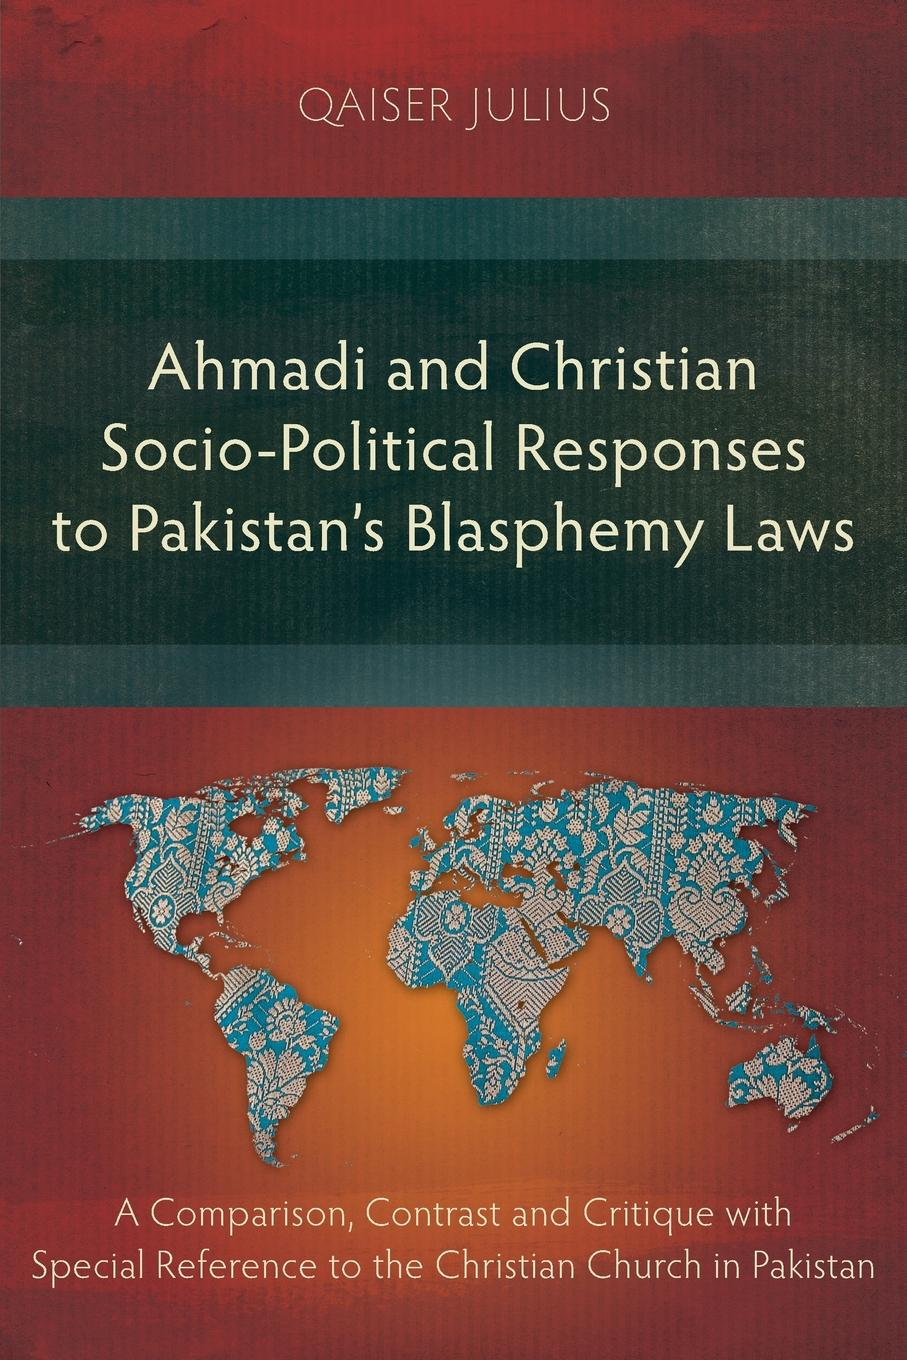 Qaiser Julius Ahmadi and Christian Socio-Political Responses to Pakistan.s Blasphemy Laws. A Comparison, Contrast and Critique with Special Reference to the Christian Church in Pakistan labour laws in india